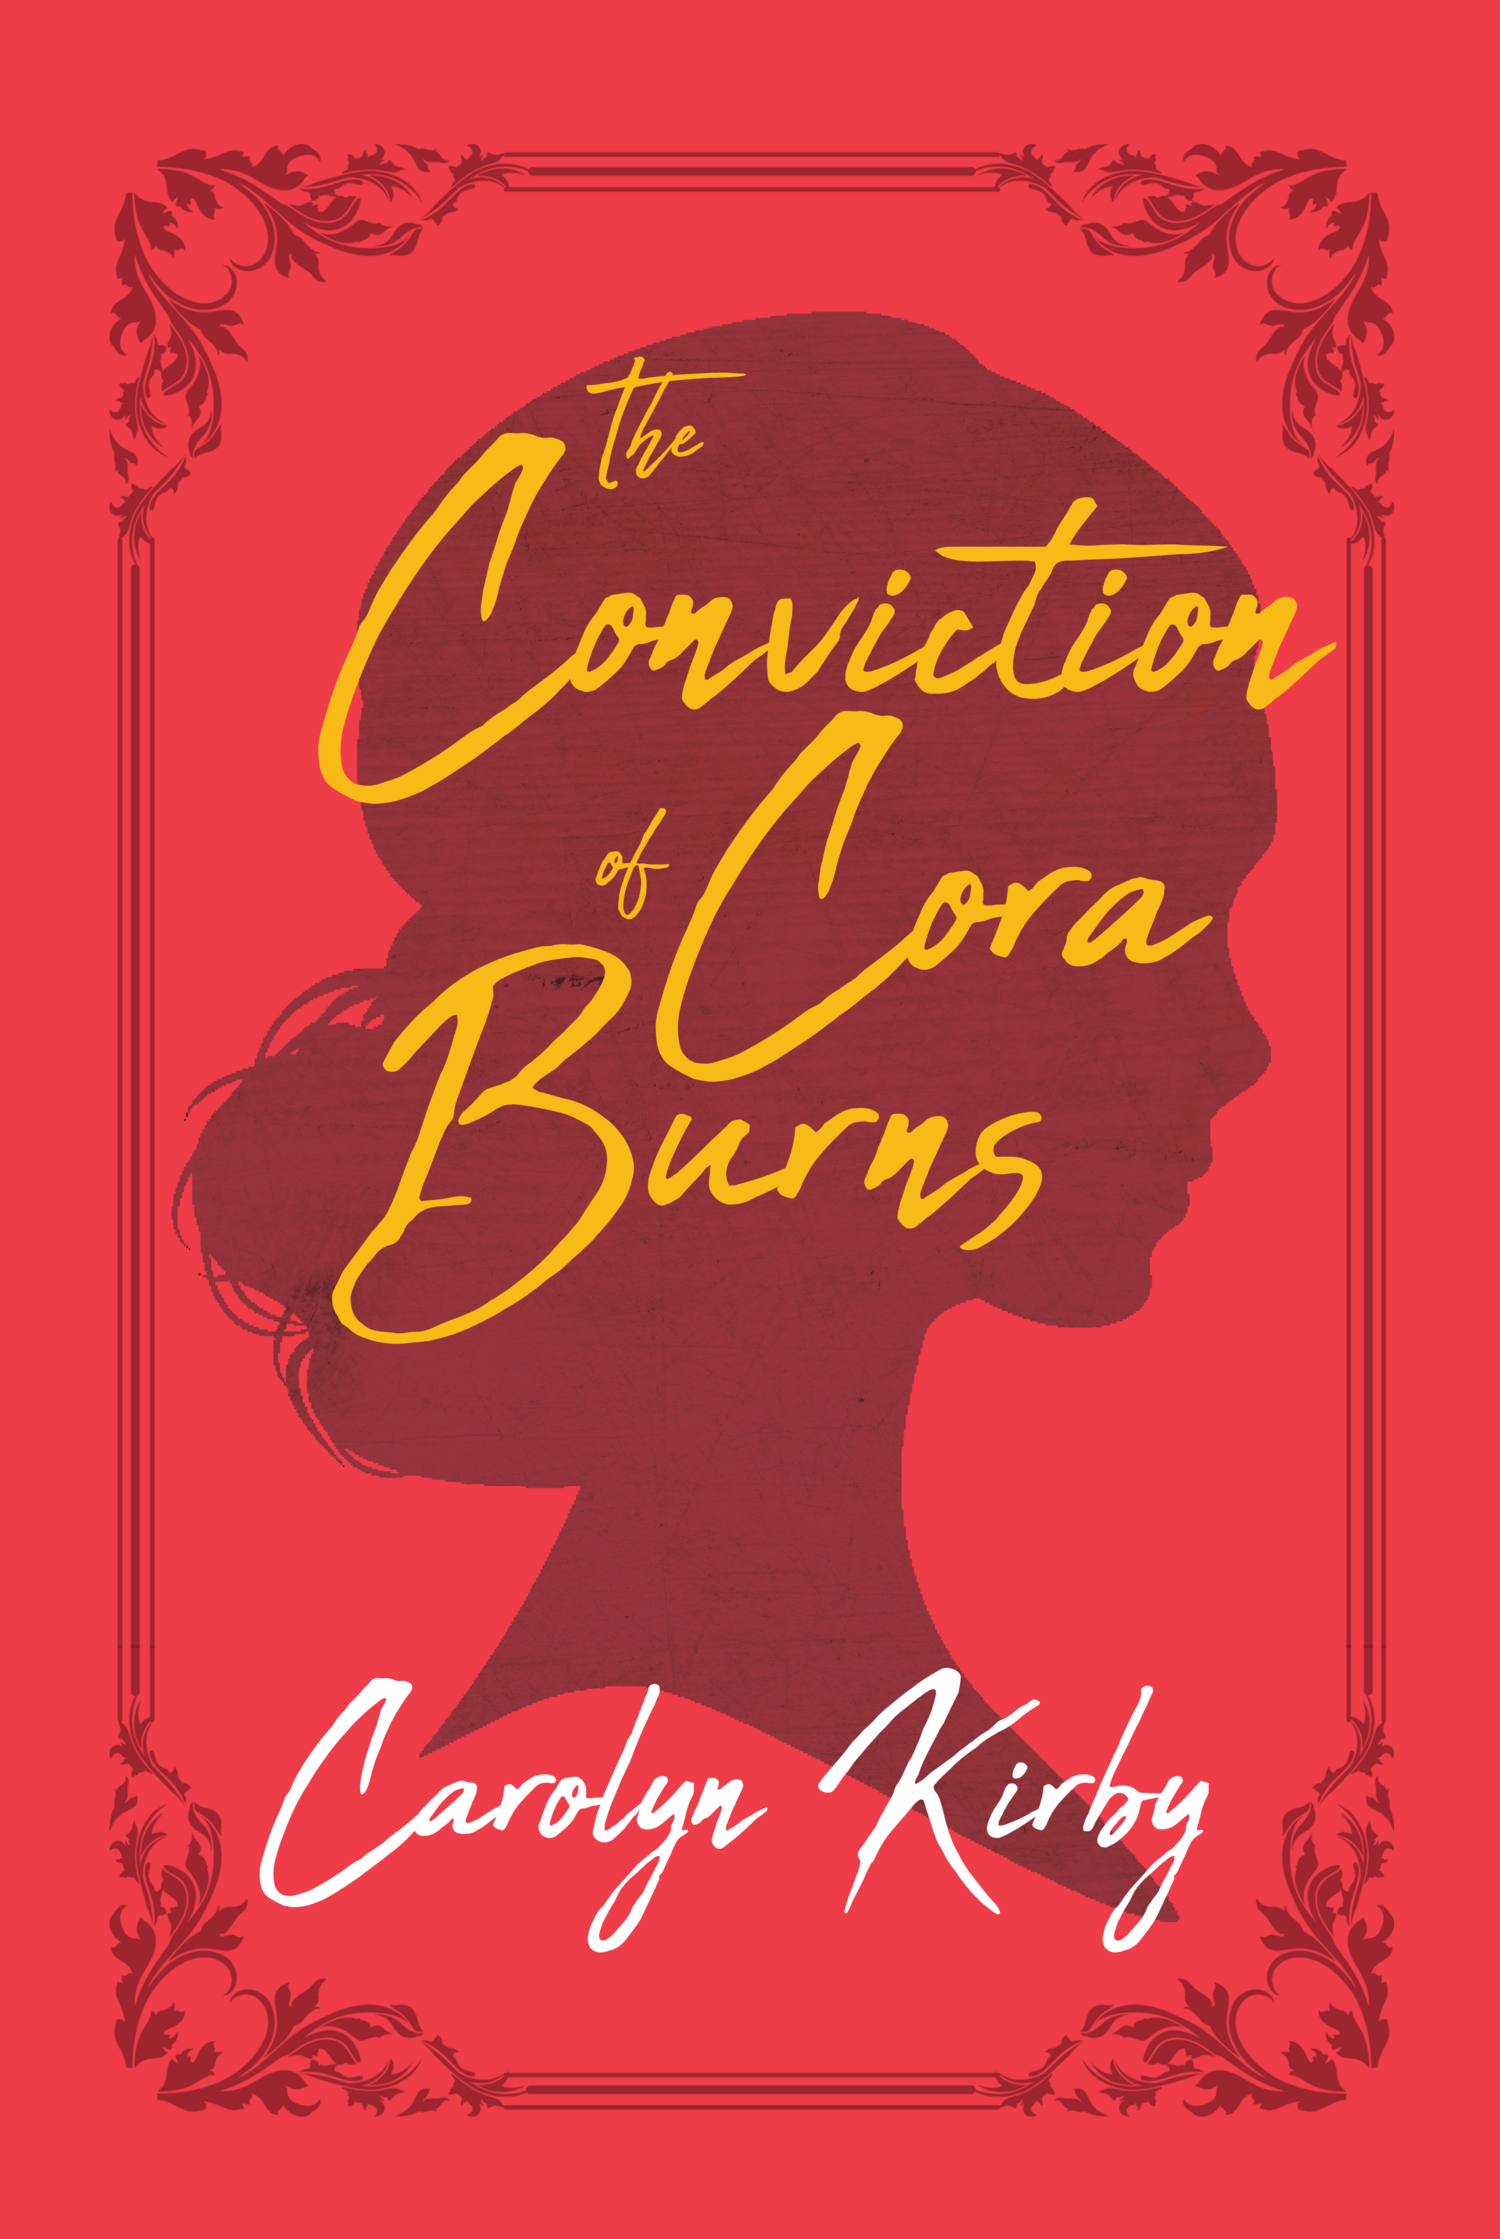 The Conviction of Cora Burns by Carolyn Kirby - eBook only